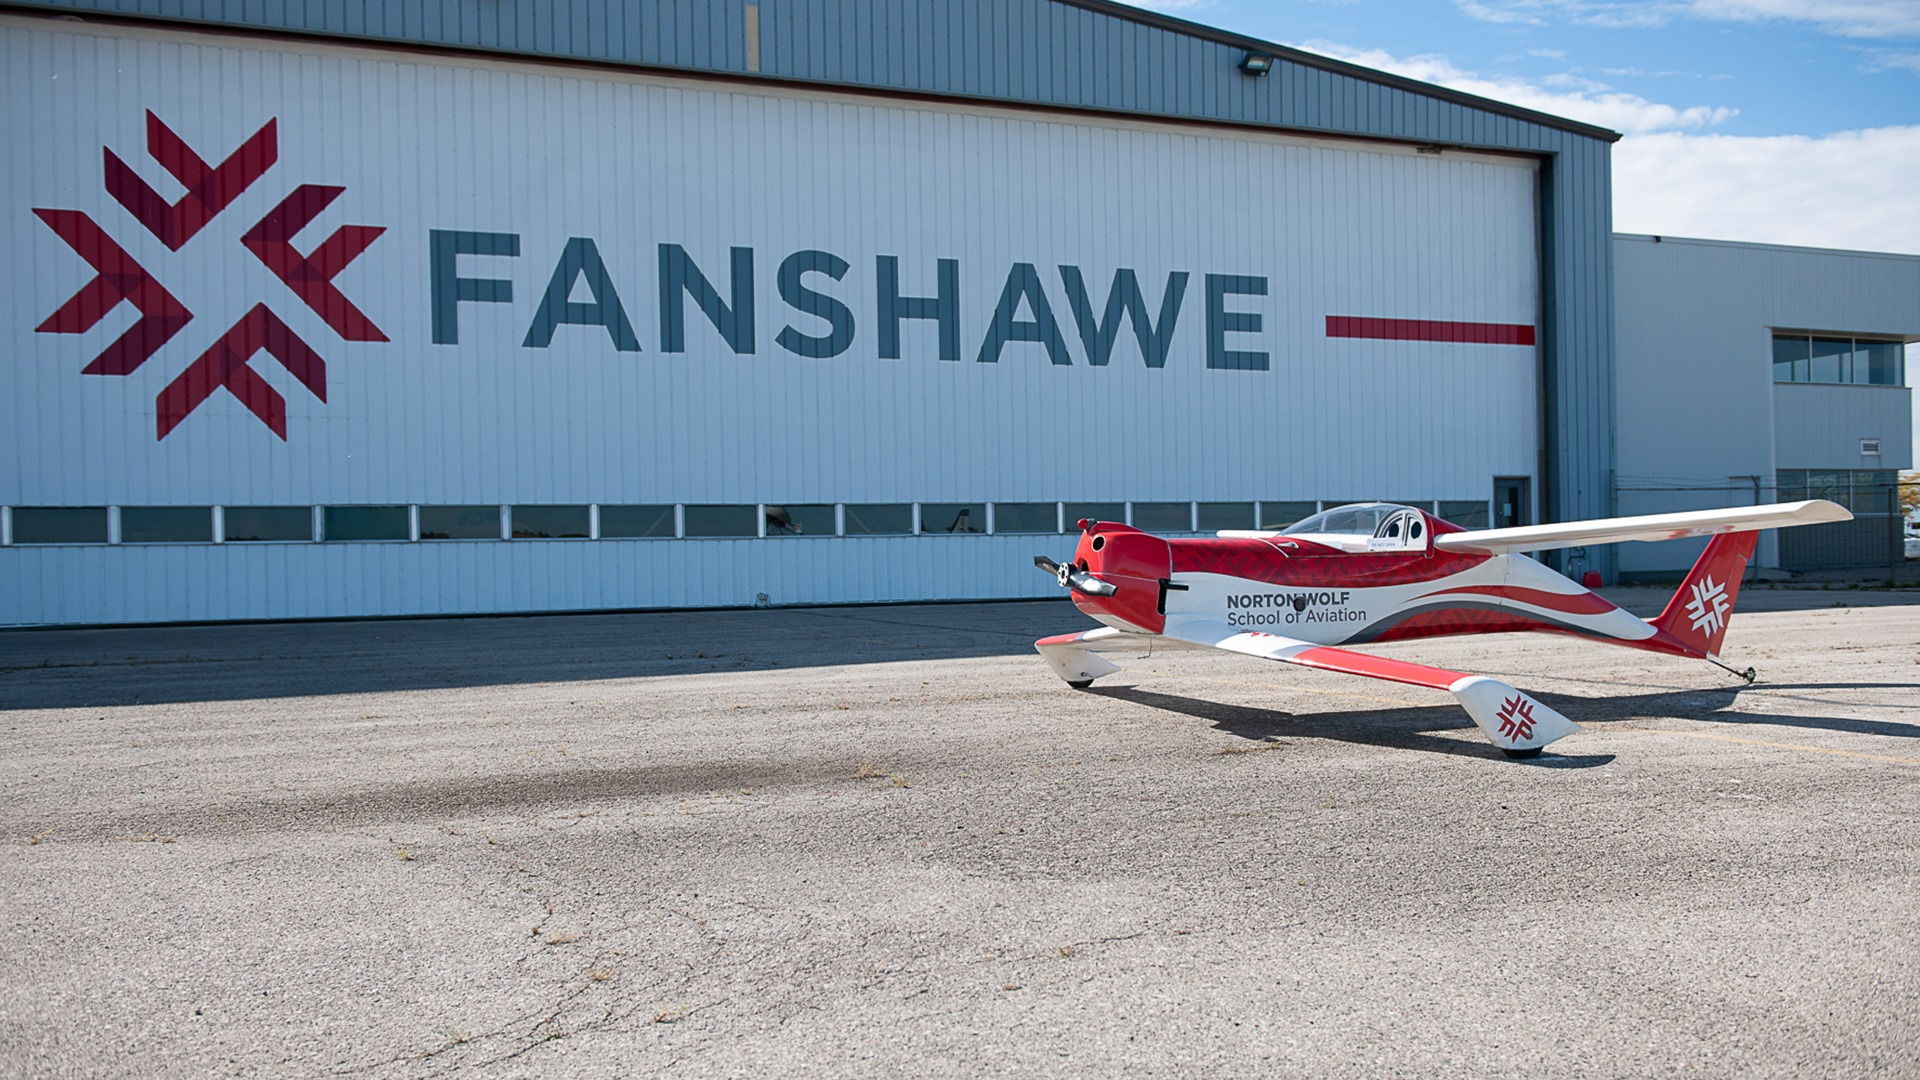 The outside of the maintenance hangar at Fanshawe College's Norton Wolf School of Aviation Technology